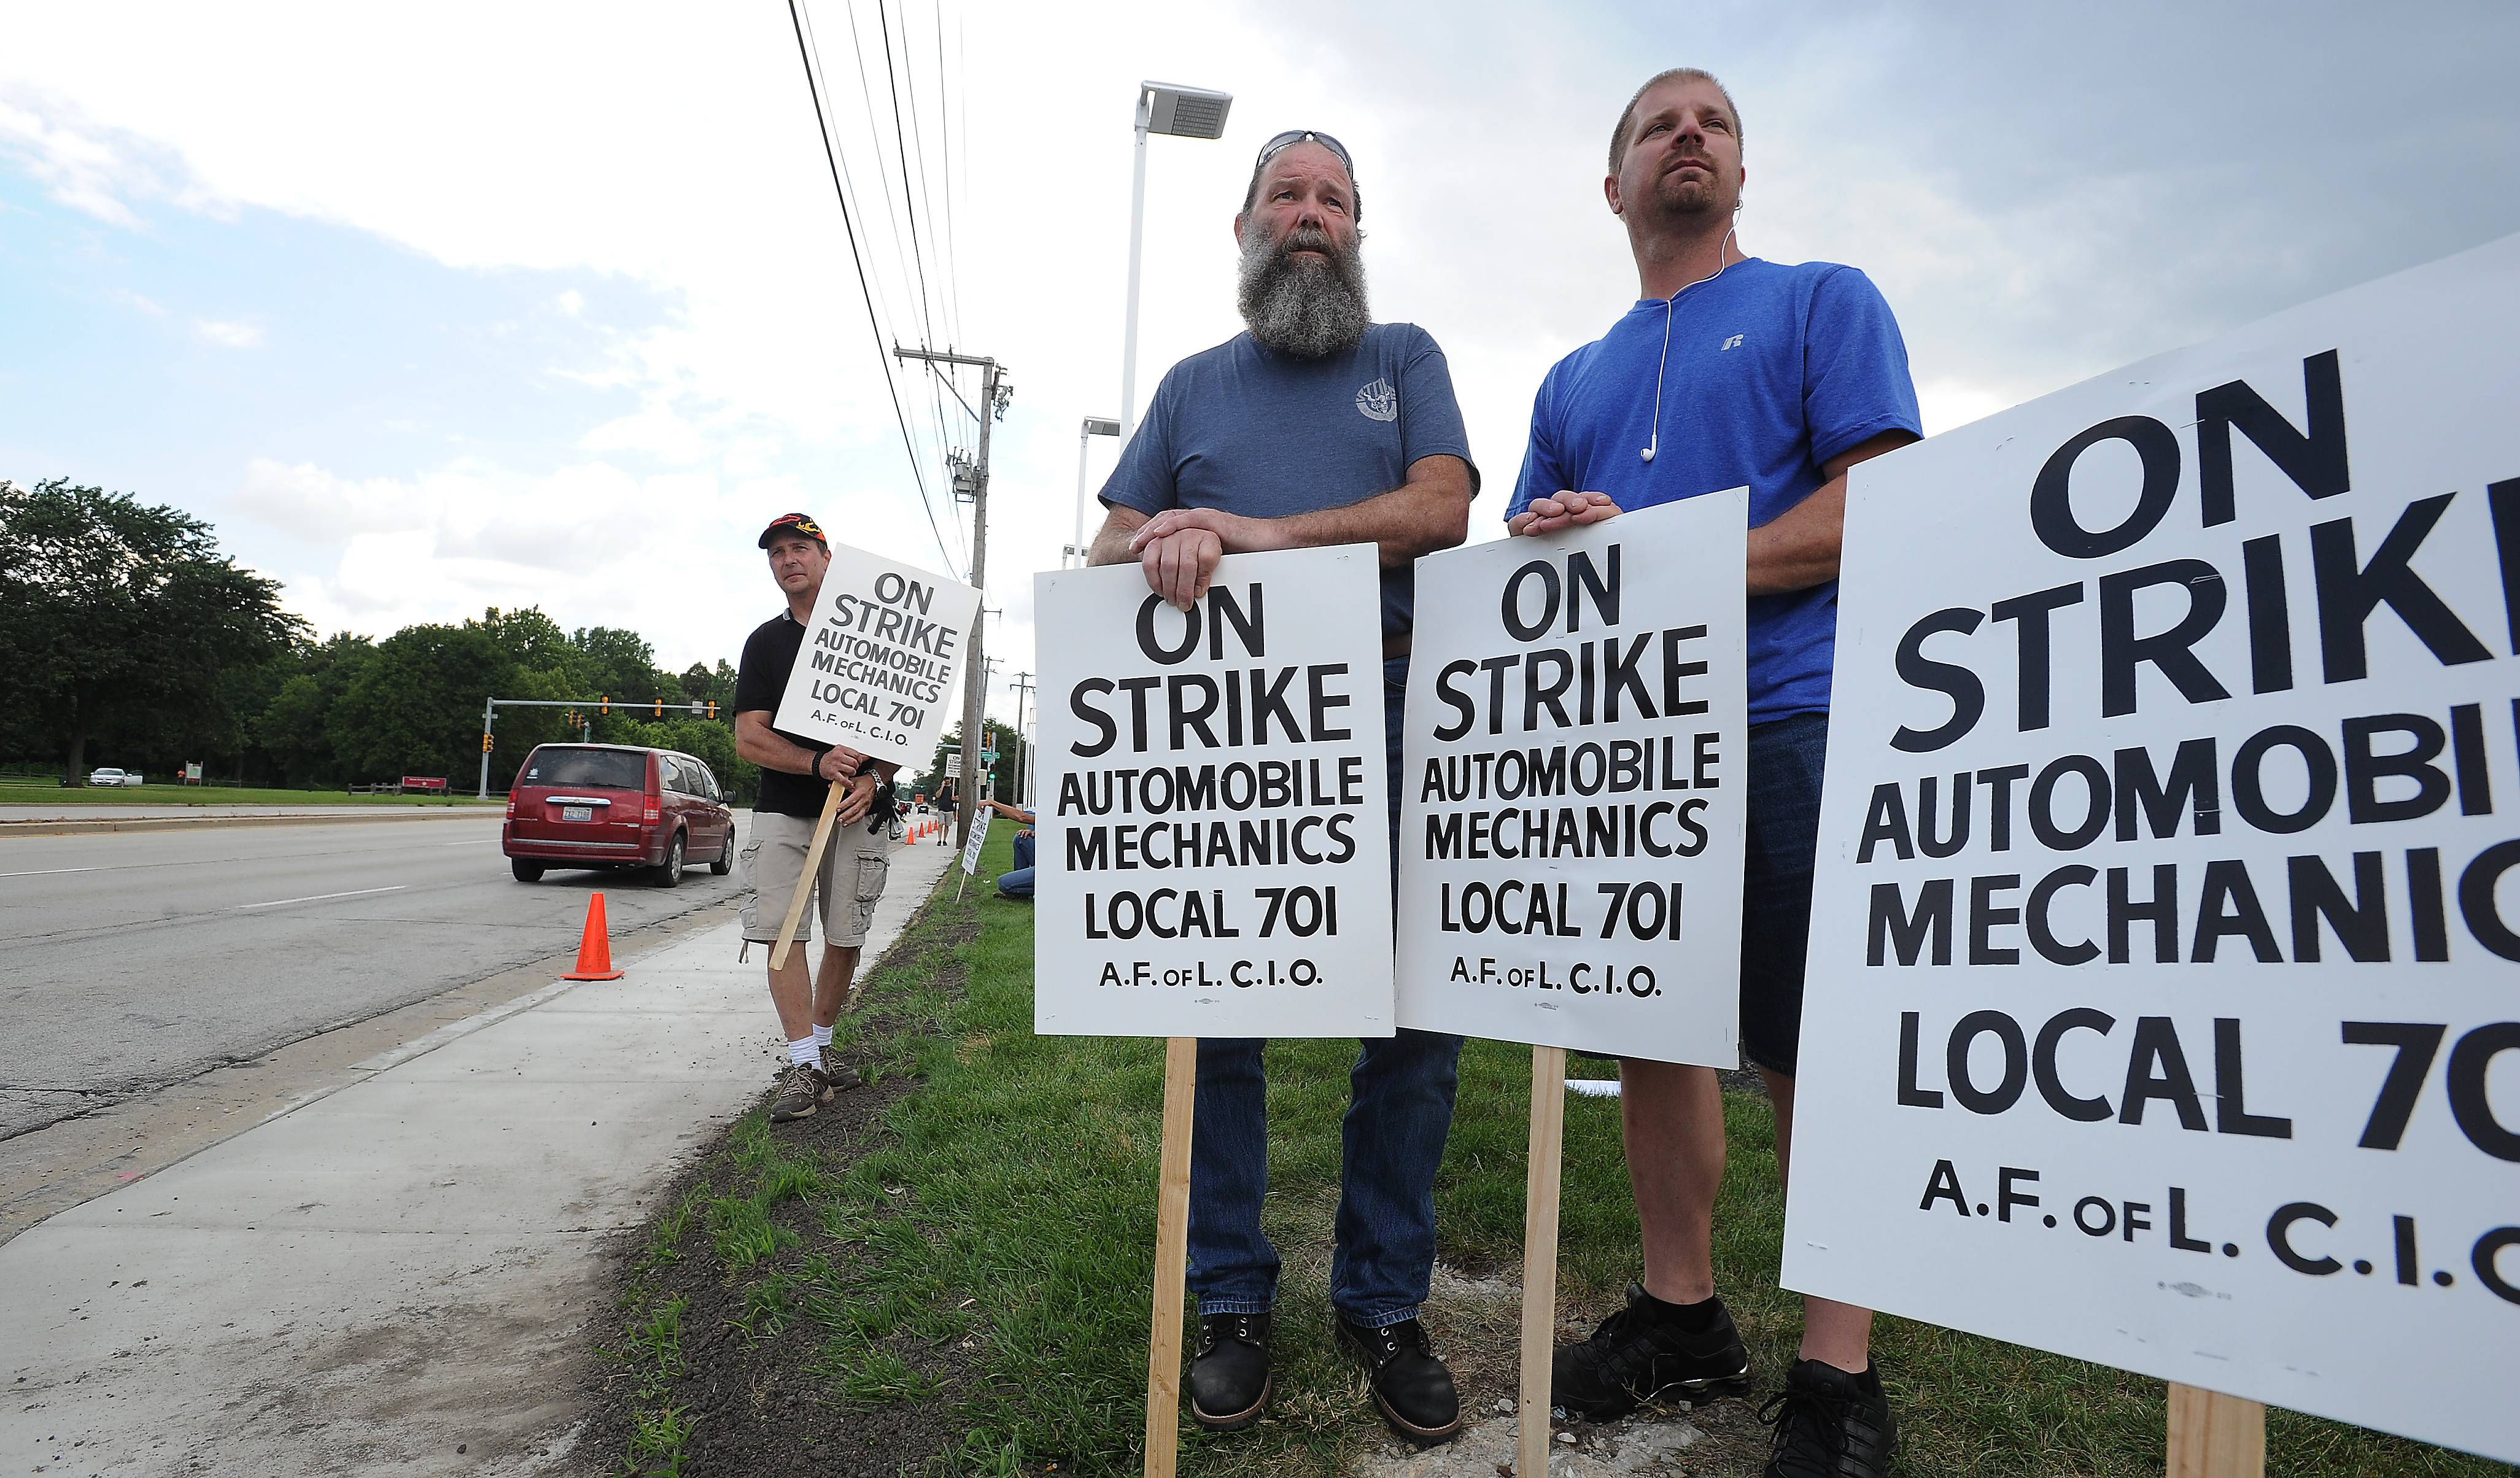 Auto mechanics on strike in Chicago suburbs